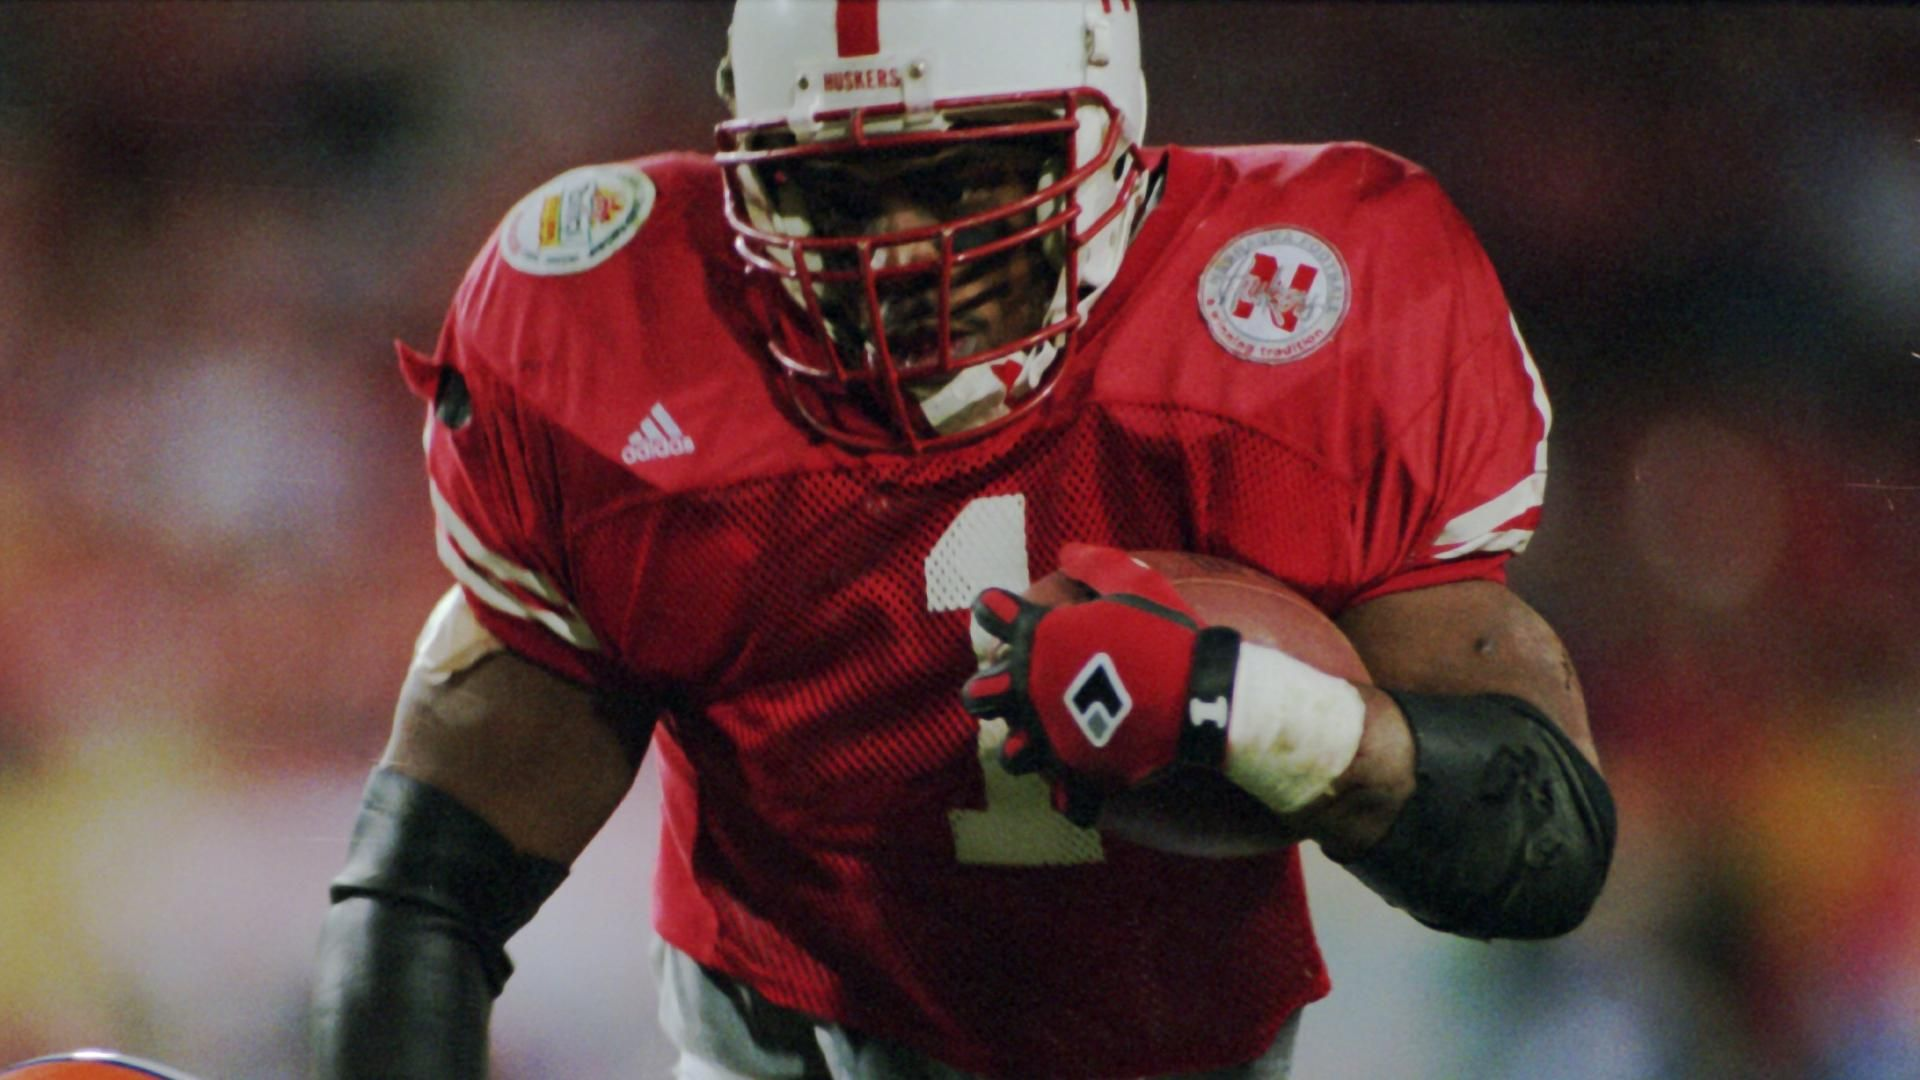 Ex-Nebraska star found dead in prison cell